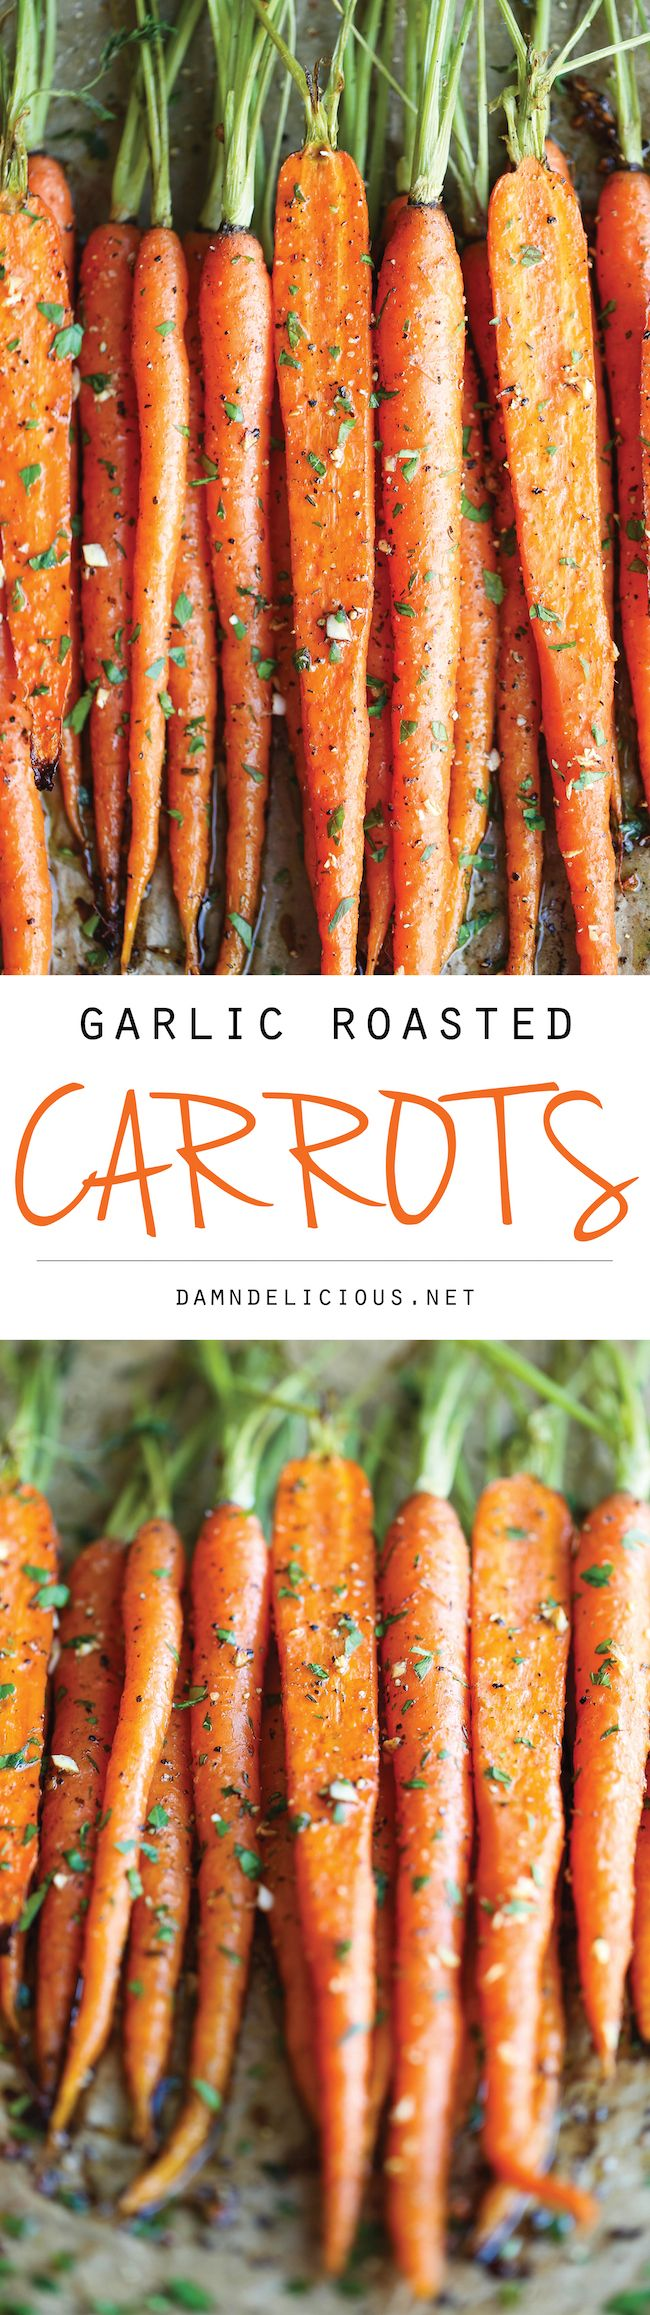 Garlic Roasted Carrots. 5 minutes prep, roast, 59.5 calories | Damn Delicious